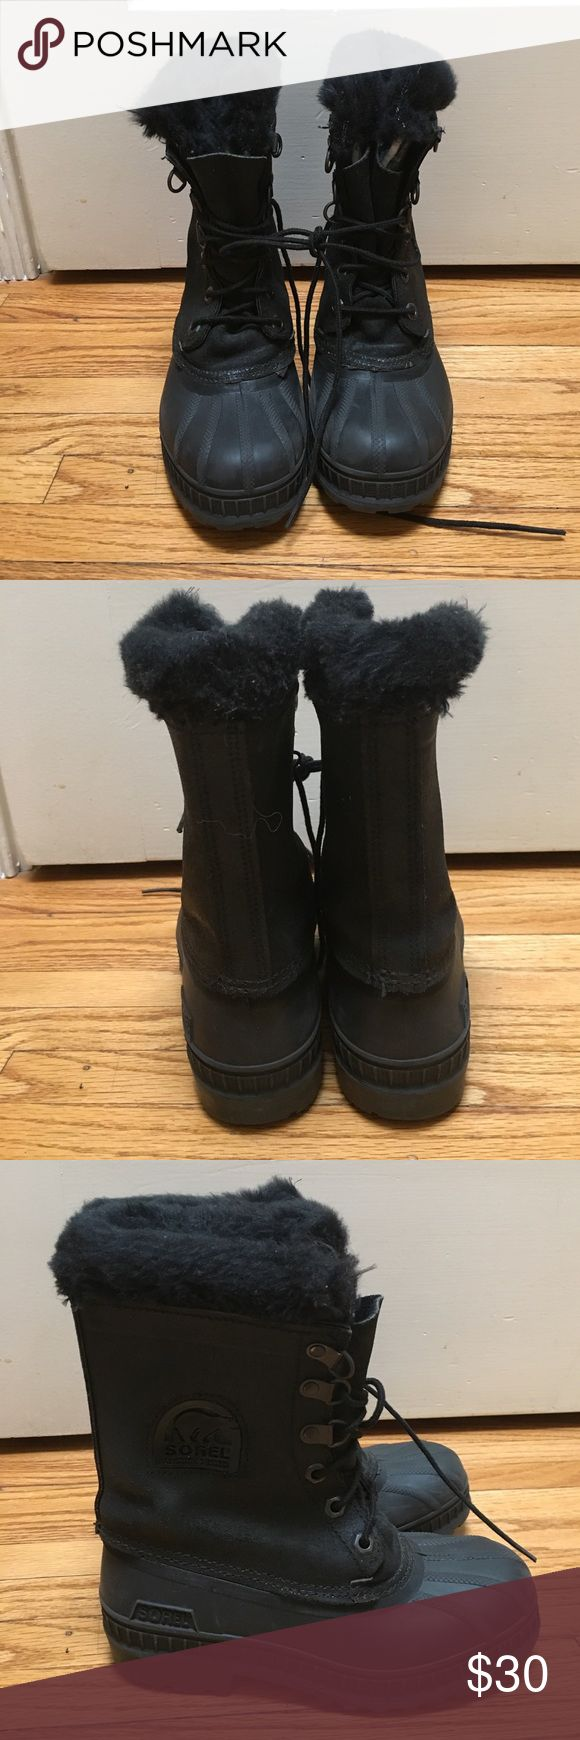 Kids Sorel snow boots boys girls sz 2 Great leather-like (man made fabric) and rubber insulated snow boots by Sorel in a size 2. Light wear from one snow weekend and from a non smoking home. Sorel Shoes Rain & Snow Boots